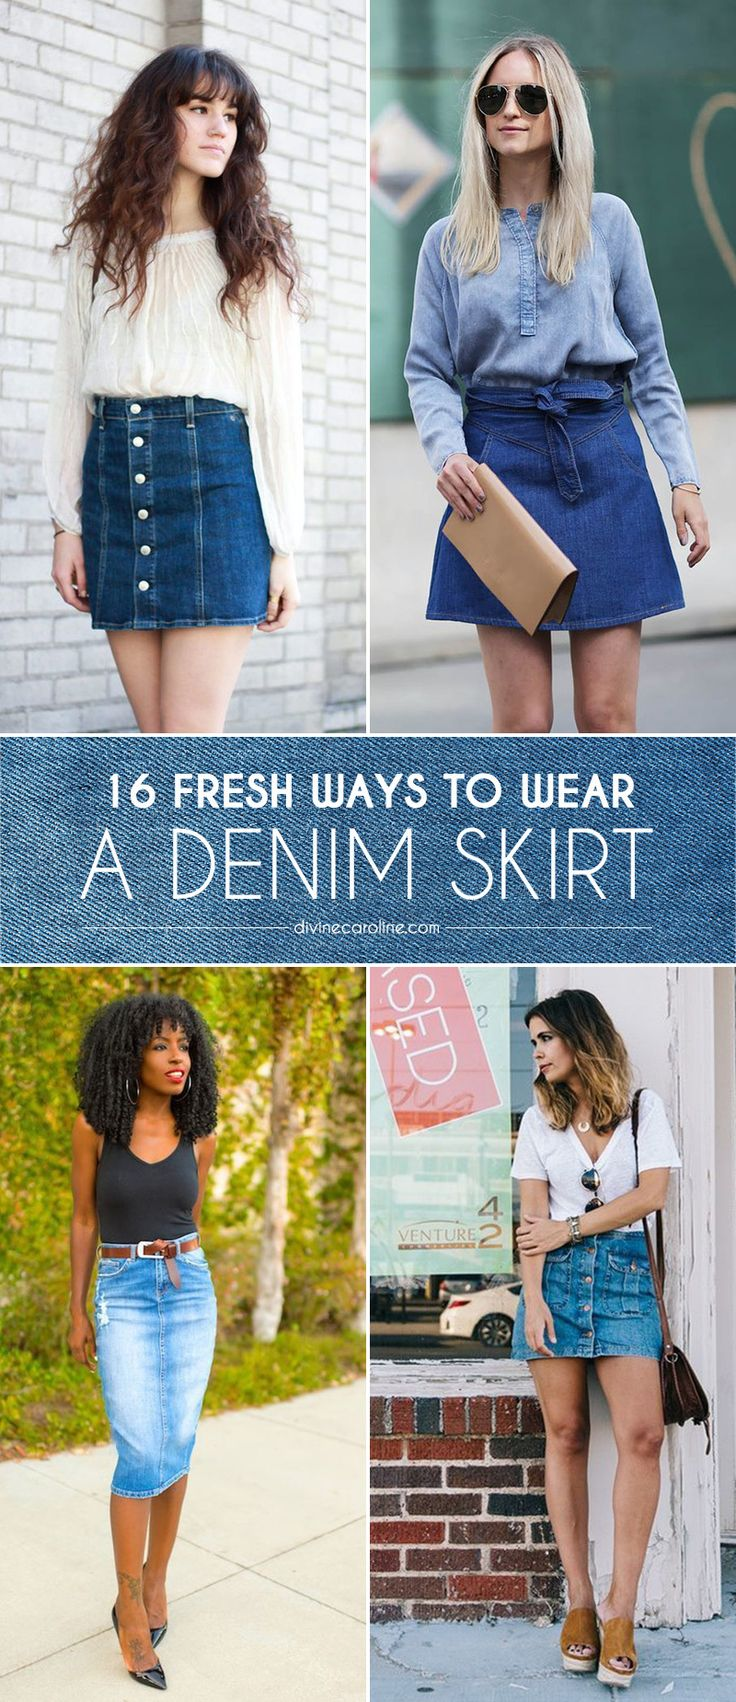 These 16 outfits with denim skirts are just what you need to jump on the denim-skirt bandwagon this season! #DenimSkirt #Fashion